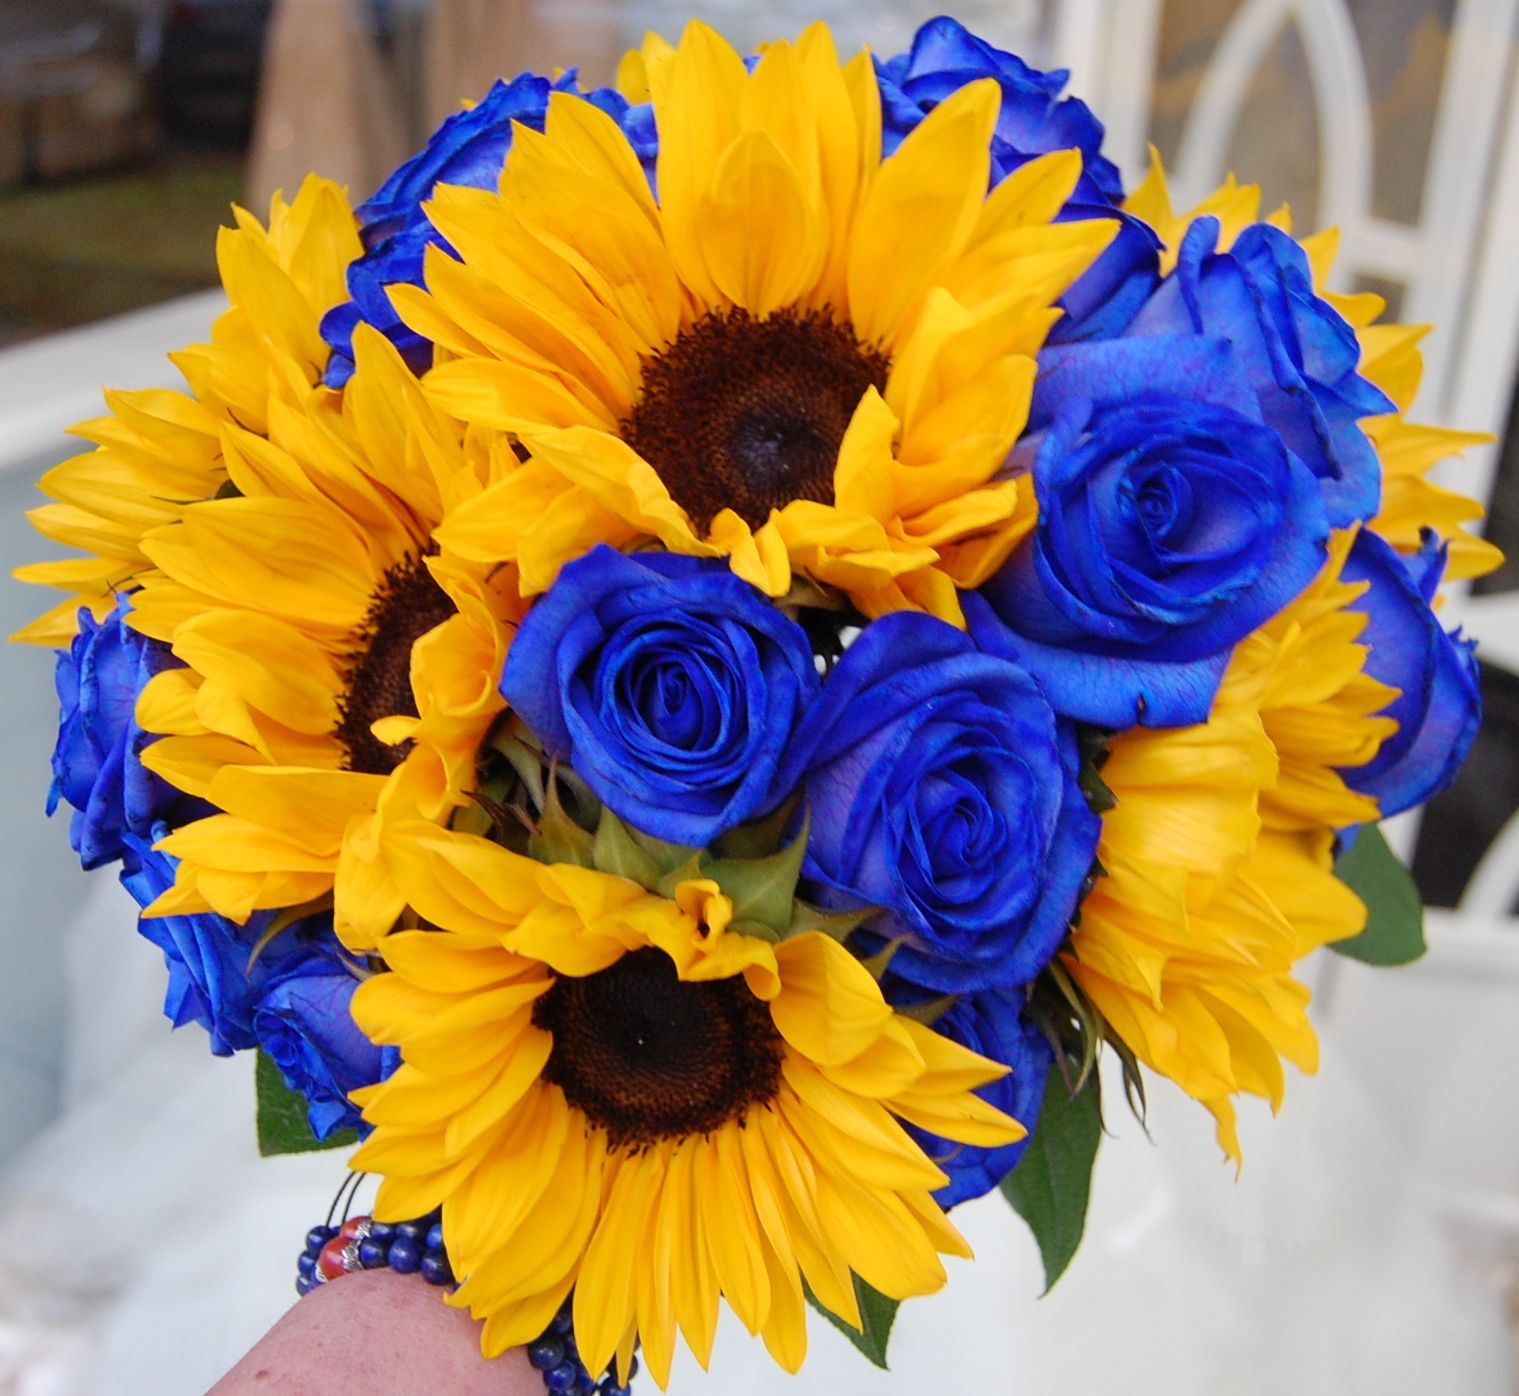 Dyed Dutch Blue Vendela Roses With Medium Size Sunflowers Www Perfectweddingflowers Com Flower Delivery Flowers Morning Flowers